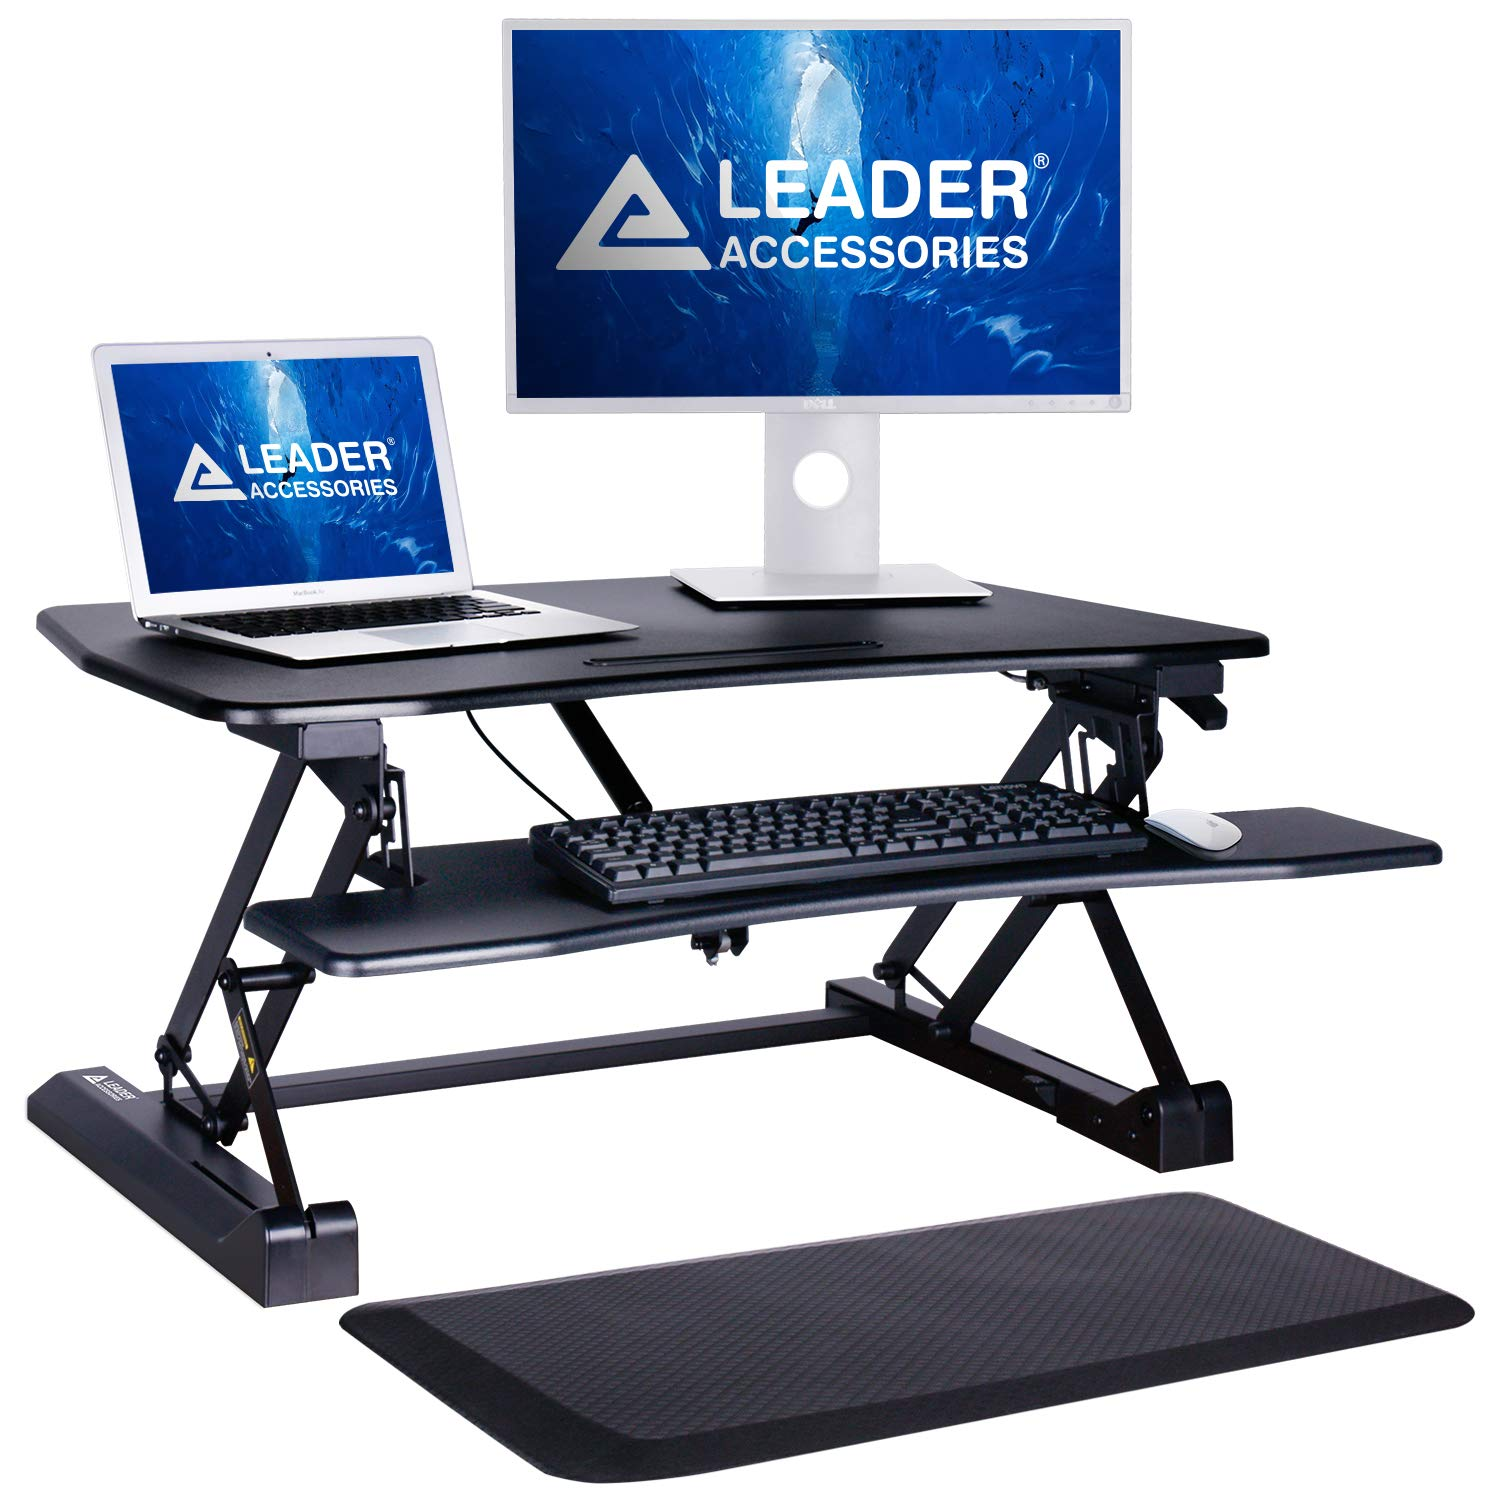 Leader Accessories Standing Desk - Comfort Anti Fatigue Mat Included - 36'' Wide Tabletop Workstation fits Dual Monitor, Spacious Keyboard Tray, Height Adjustable Ergonomic Sit Stand Desk Converter by Leader Accessories